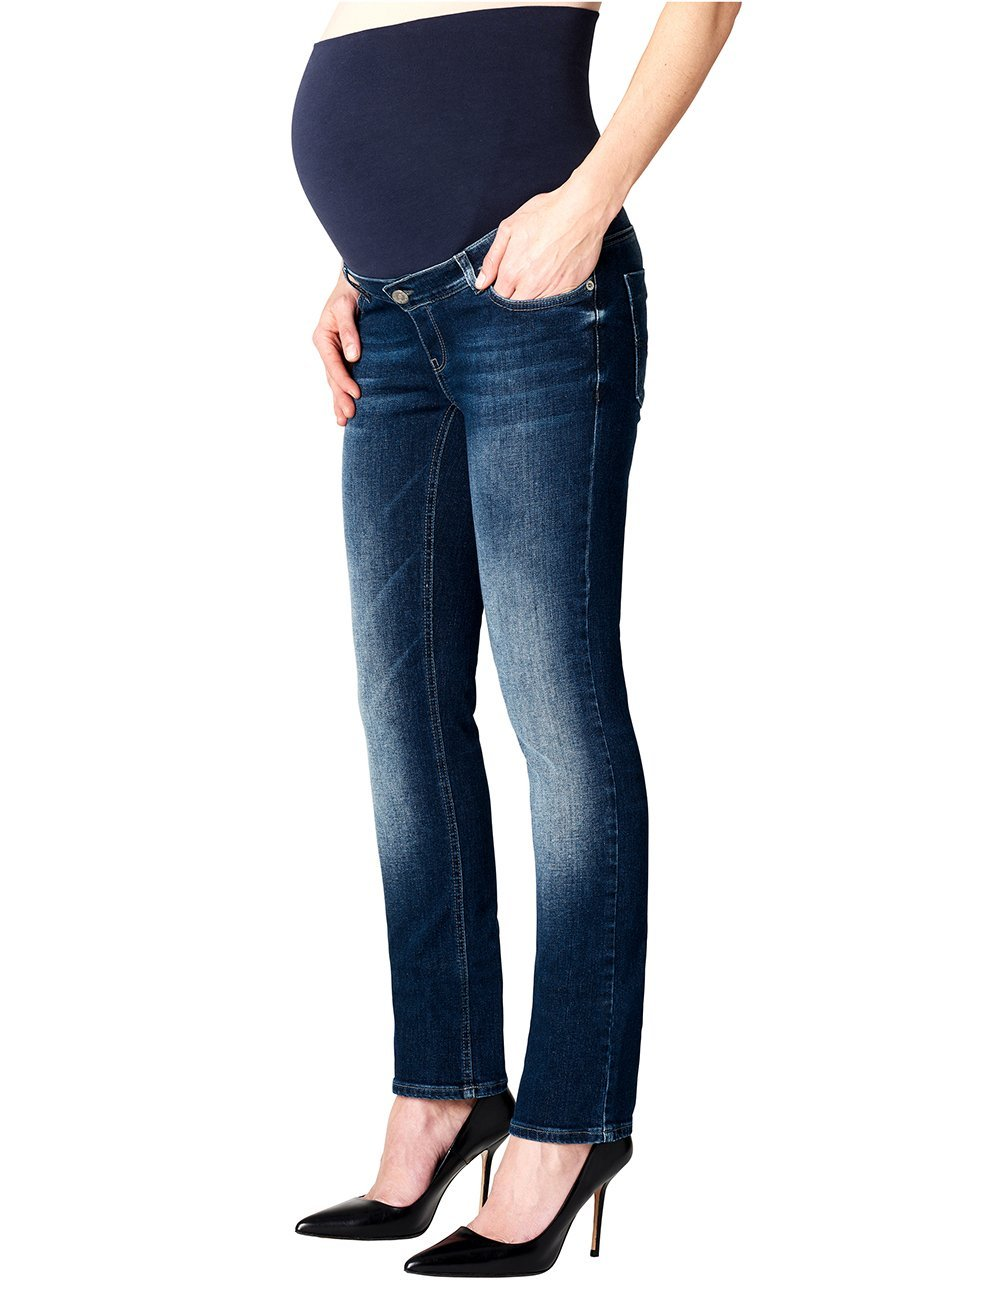 Esprit Maternity Pants Denim OTB Straight, Jeans-Maternité Femme TASK LICENSE B.V. G8C009